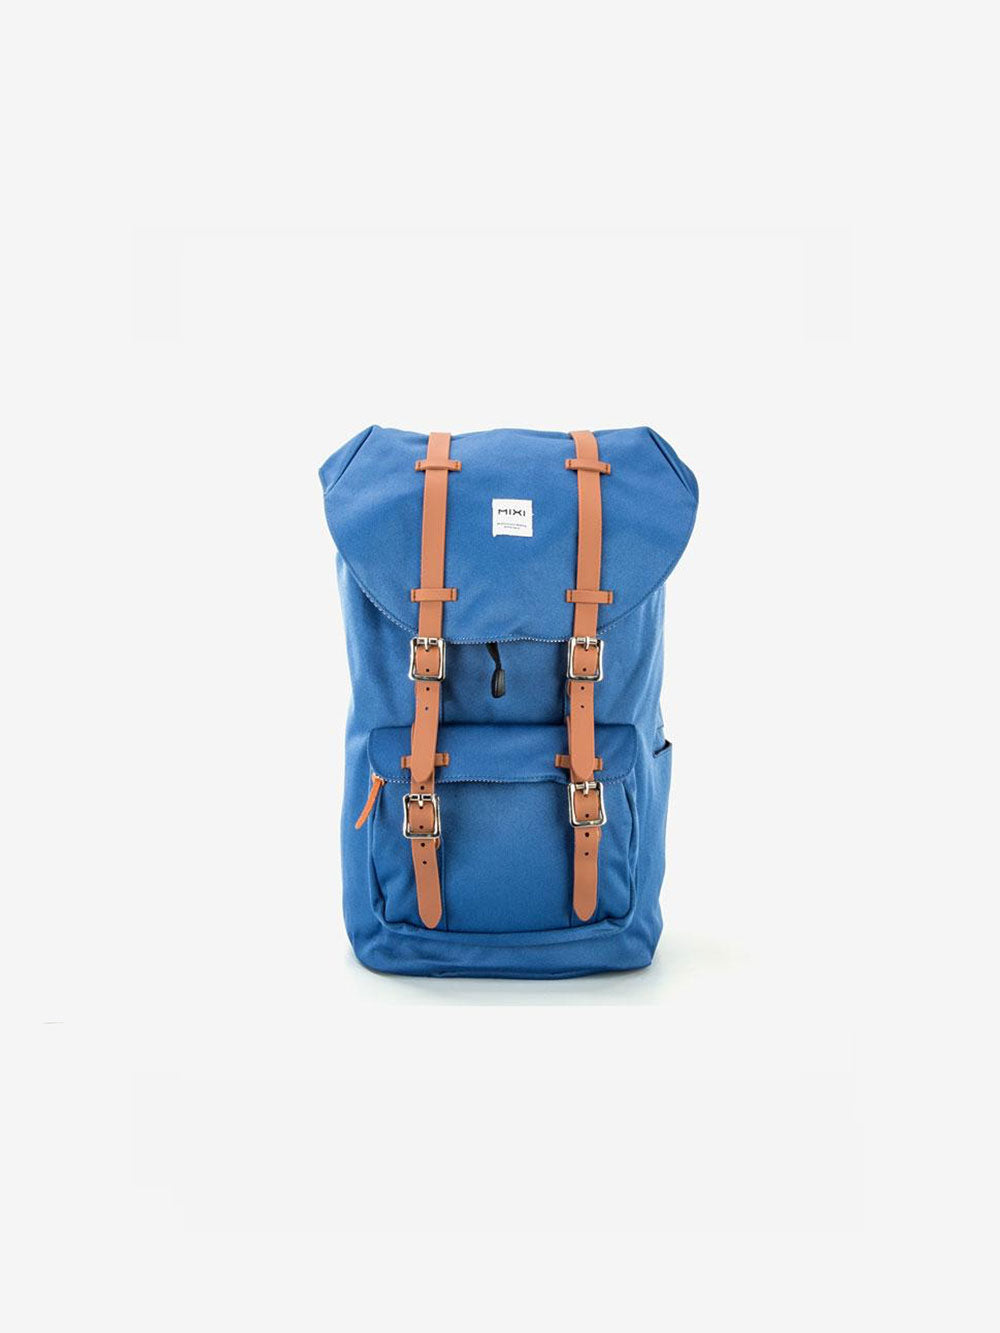 The Knapsack in True Blue